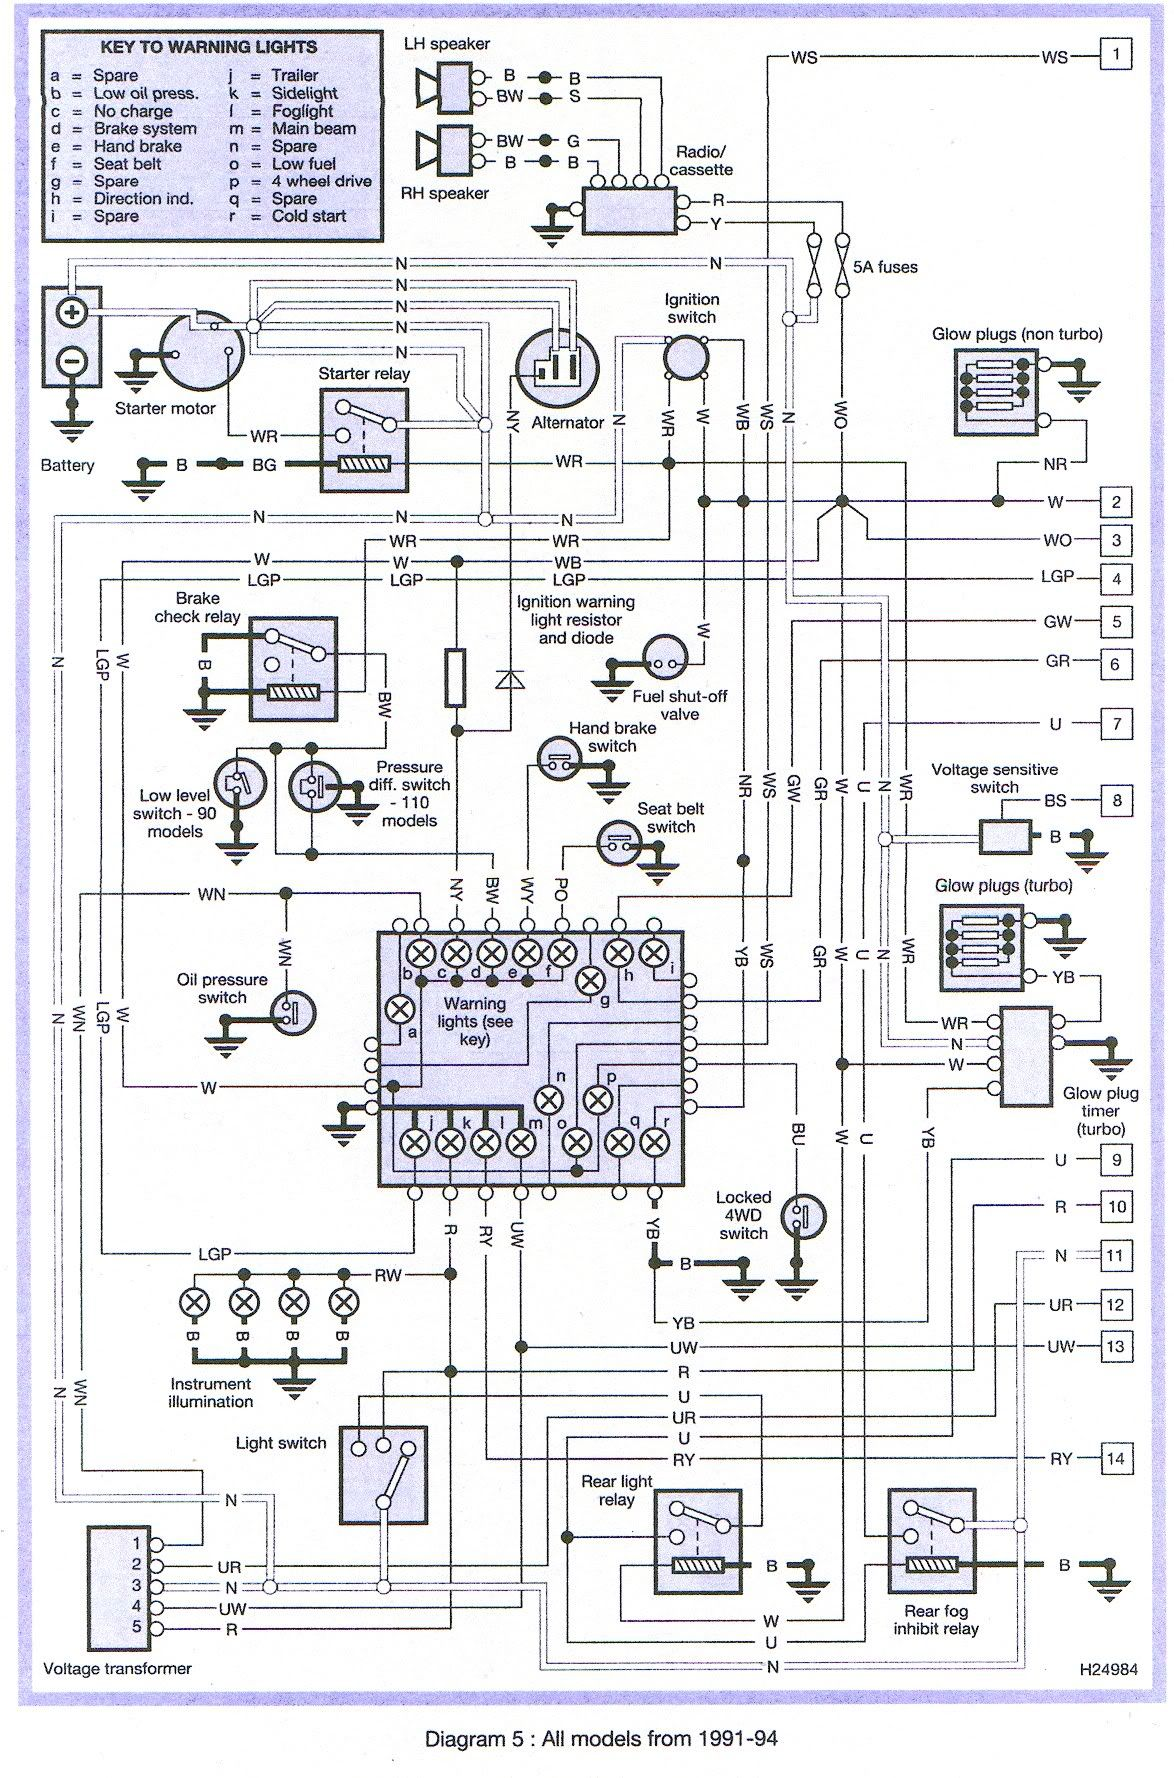 2005 Land Rover Lr3 Wiring Diagram - Vn.davidforlife.de • Land Rover Wiring Diagram on land rover timing marks, land rover fuel system, land rover torque specs, land rover service manuals, land rover rear axle, land rover all models, land rover troubleshooting, land rover discovery, land rover brakes, land rover radio wiring, land rover dimensions, land rover exhaust, land rover braking system, land rover paint codes, land rover belt routing, land rover tools, range rover wiring diagrams, land rover water pump replacement, land rover schematics, land rover engine,